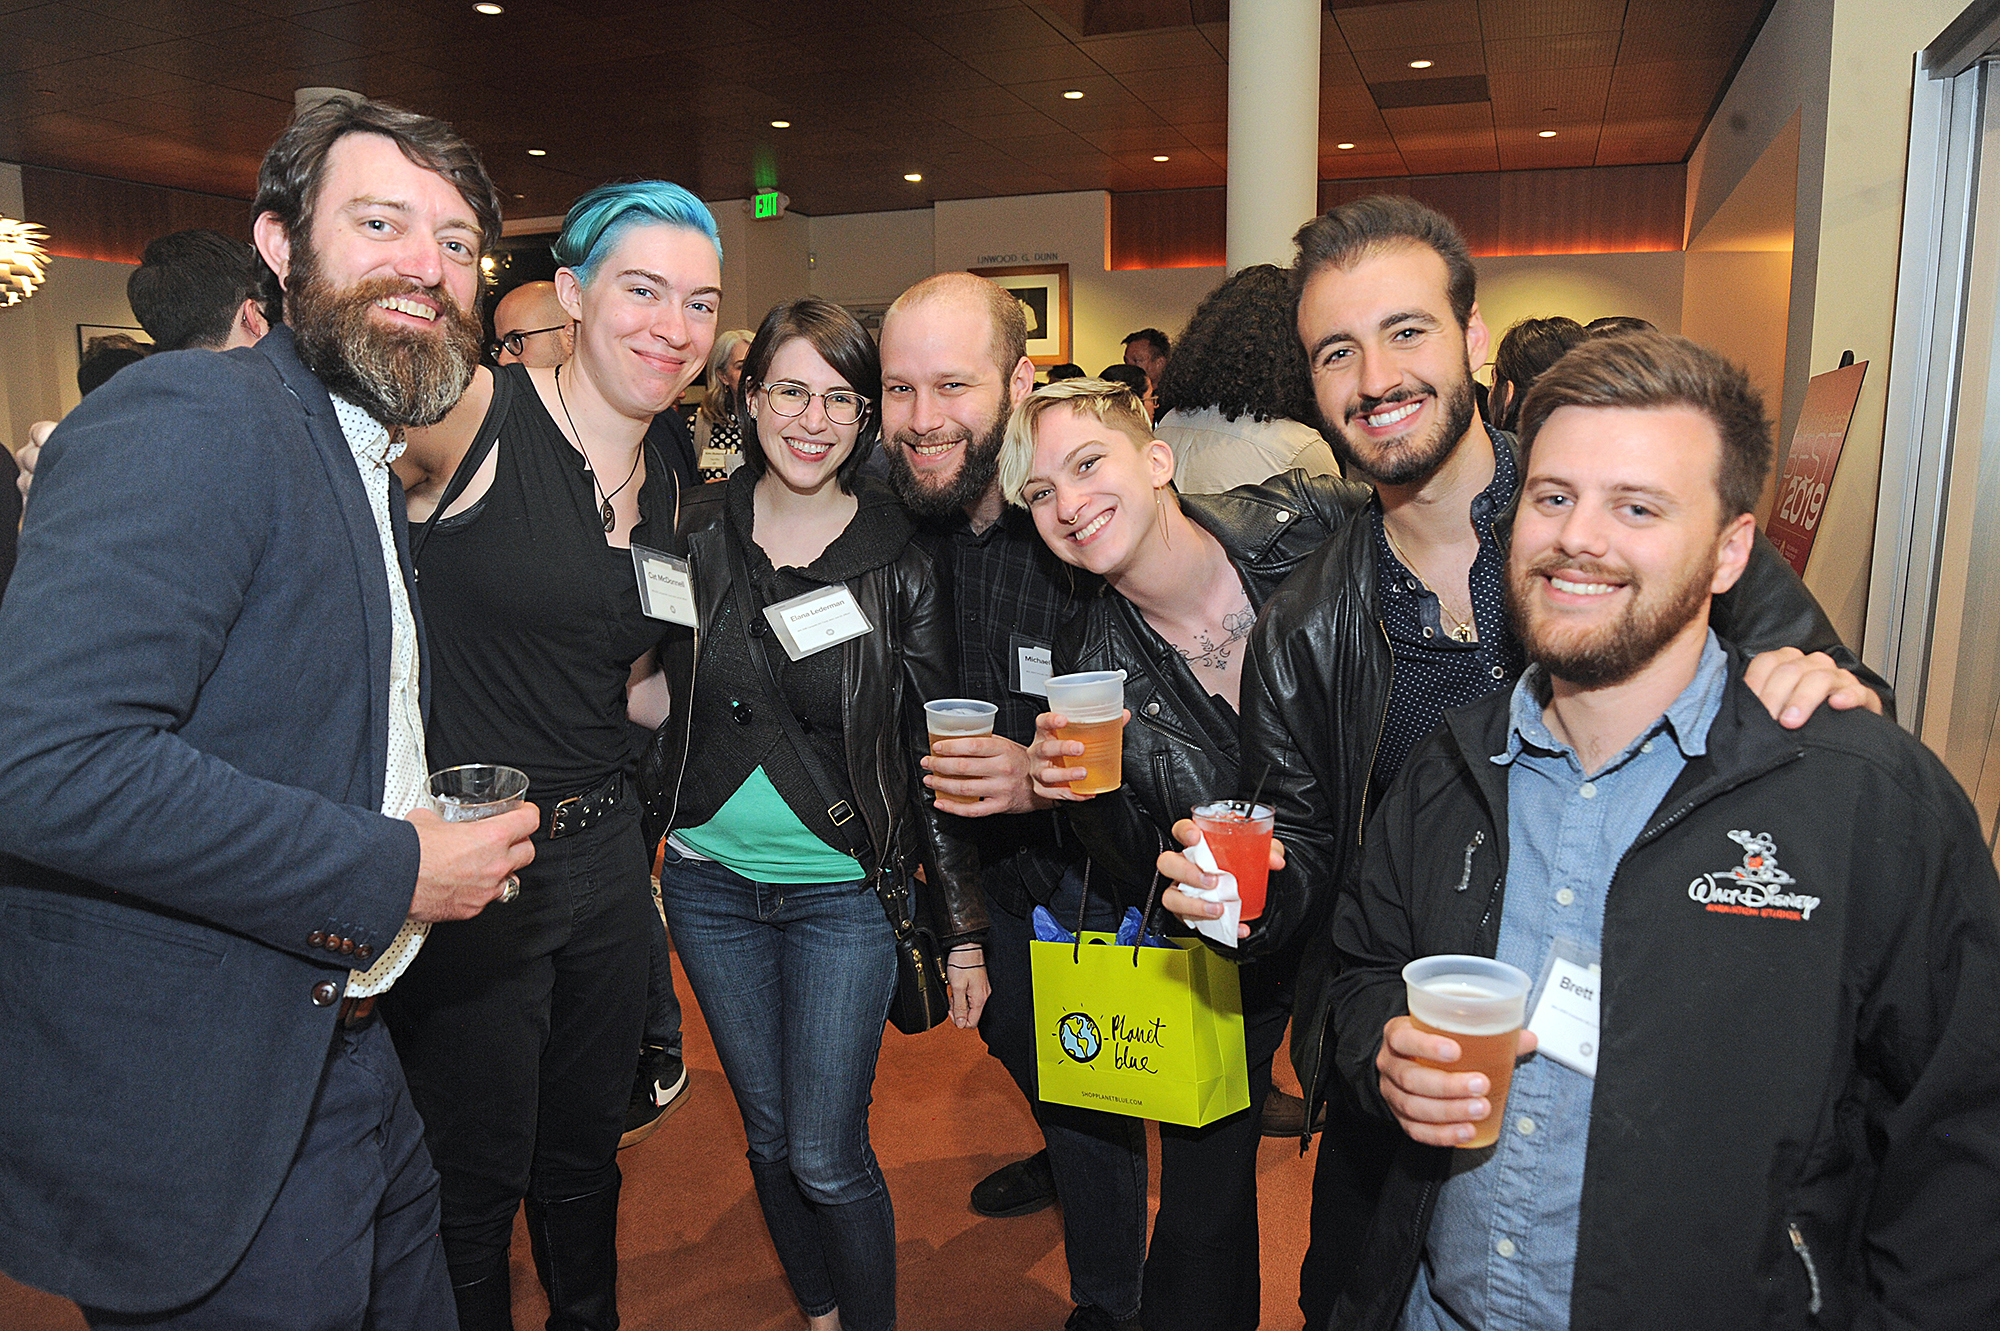 """<p """"="""""""">A group of people at a reception in a movie theater lobby smile for the camera."""